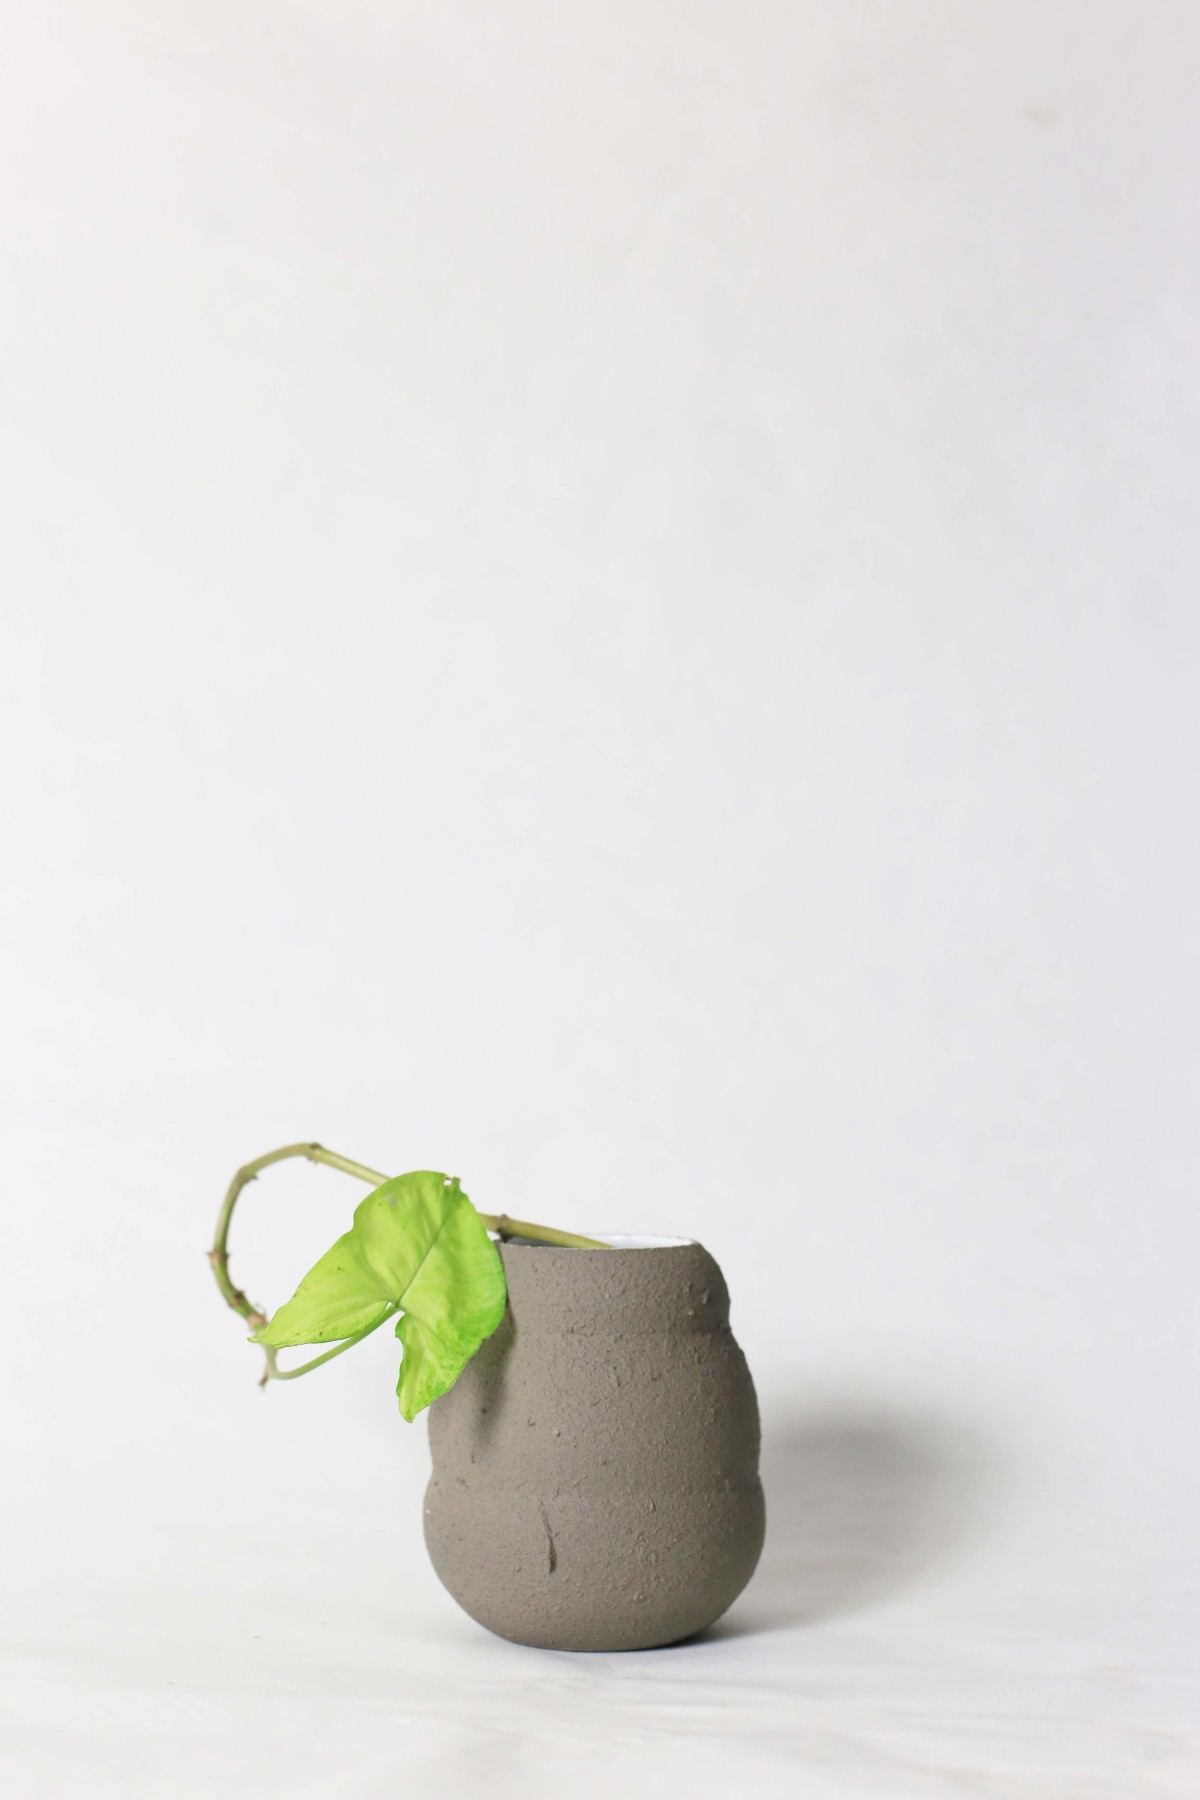 Graphite color ceramic vase in honey pot shape with green leaf on a white background